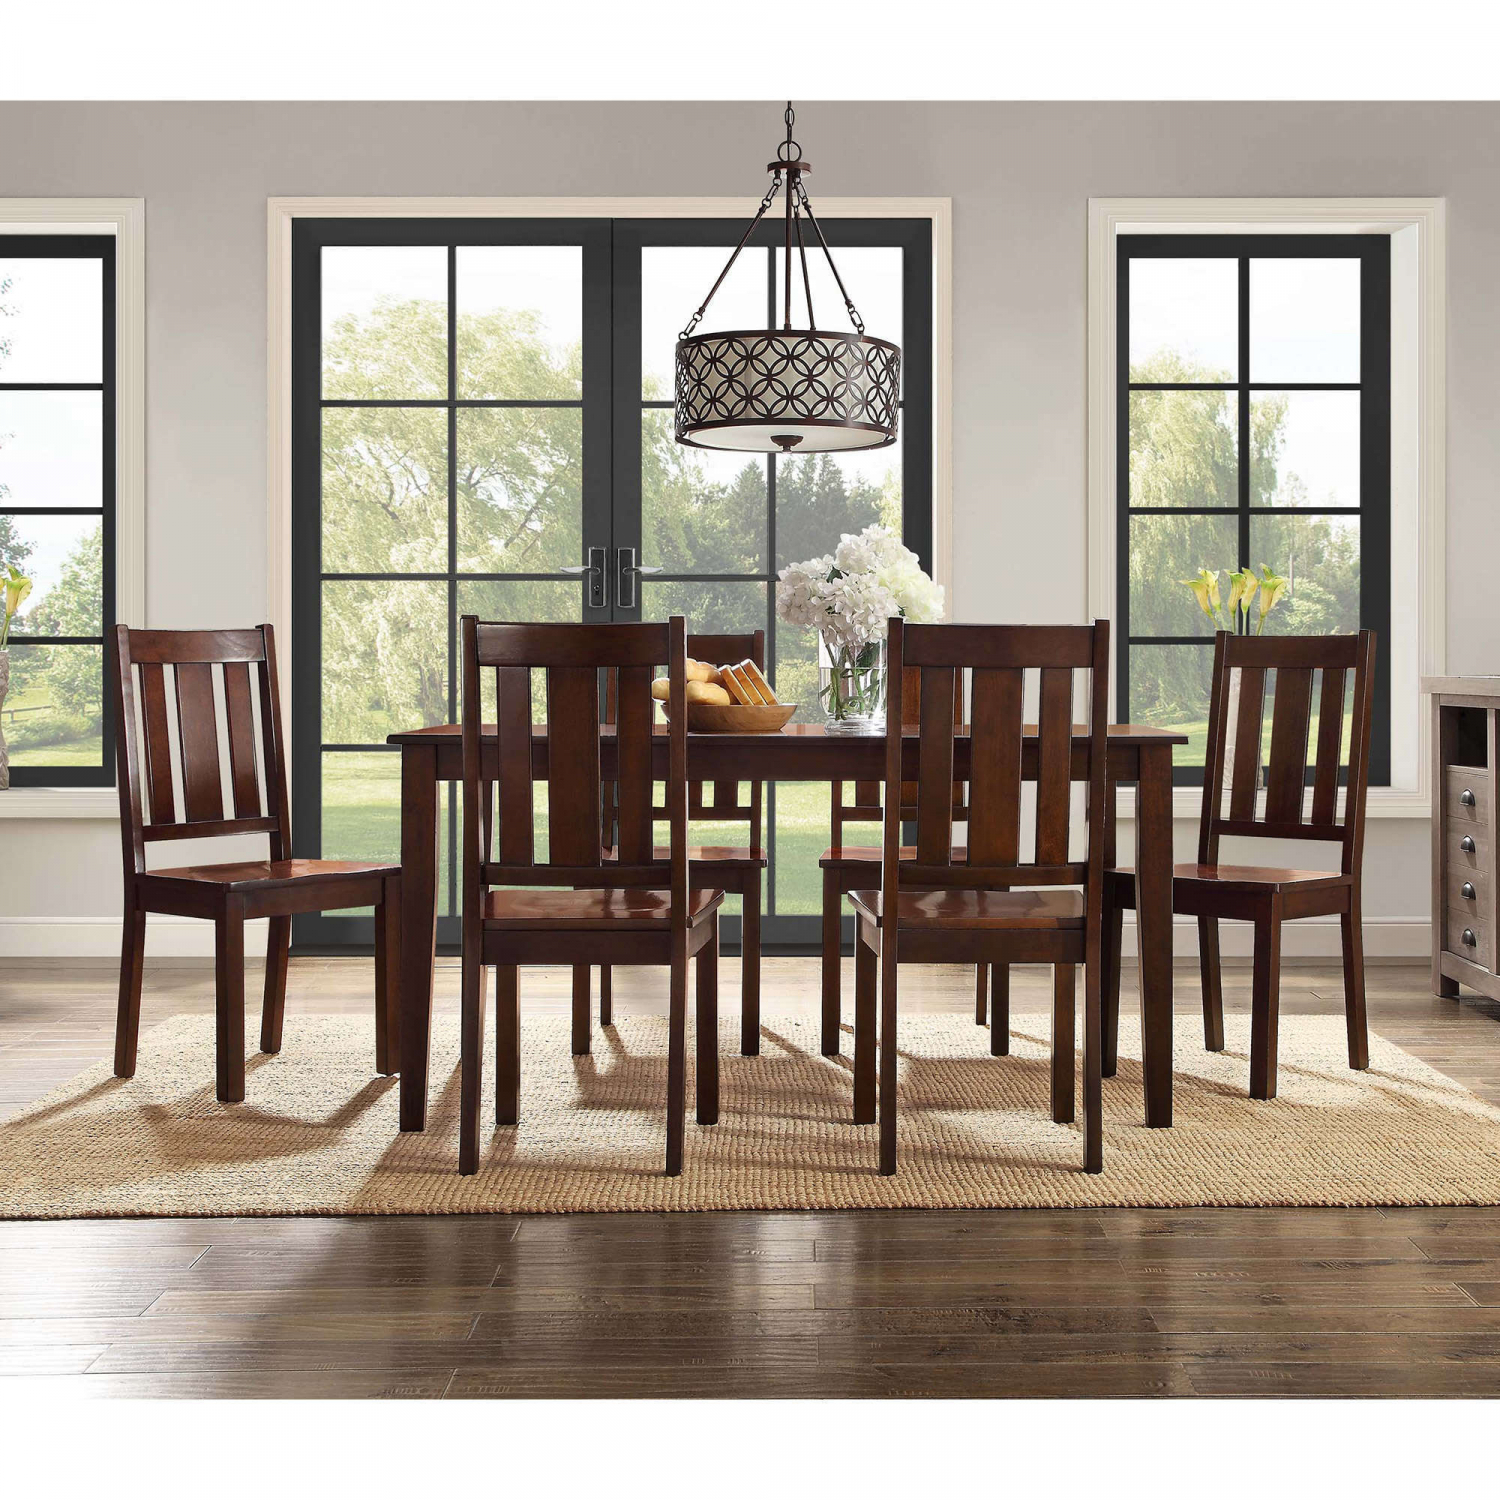 Wooden Kitchen Tables And Chairs Sets